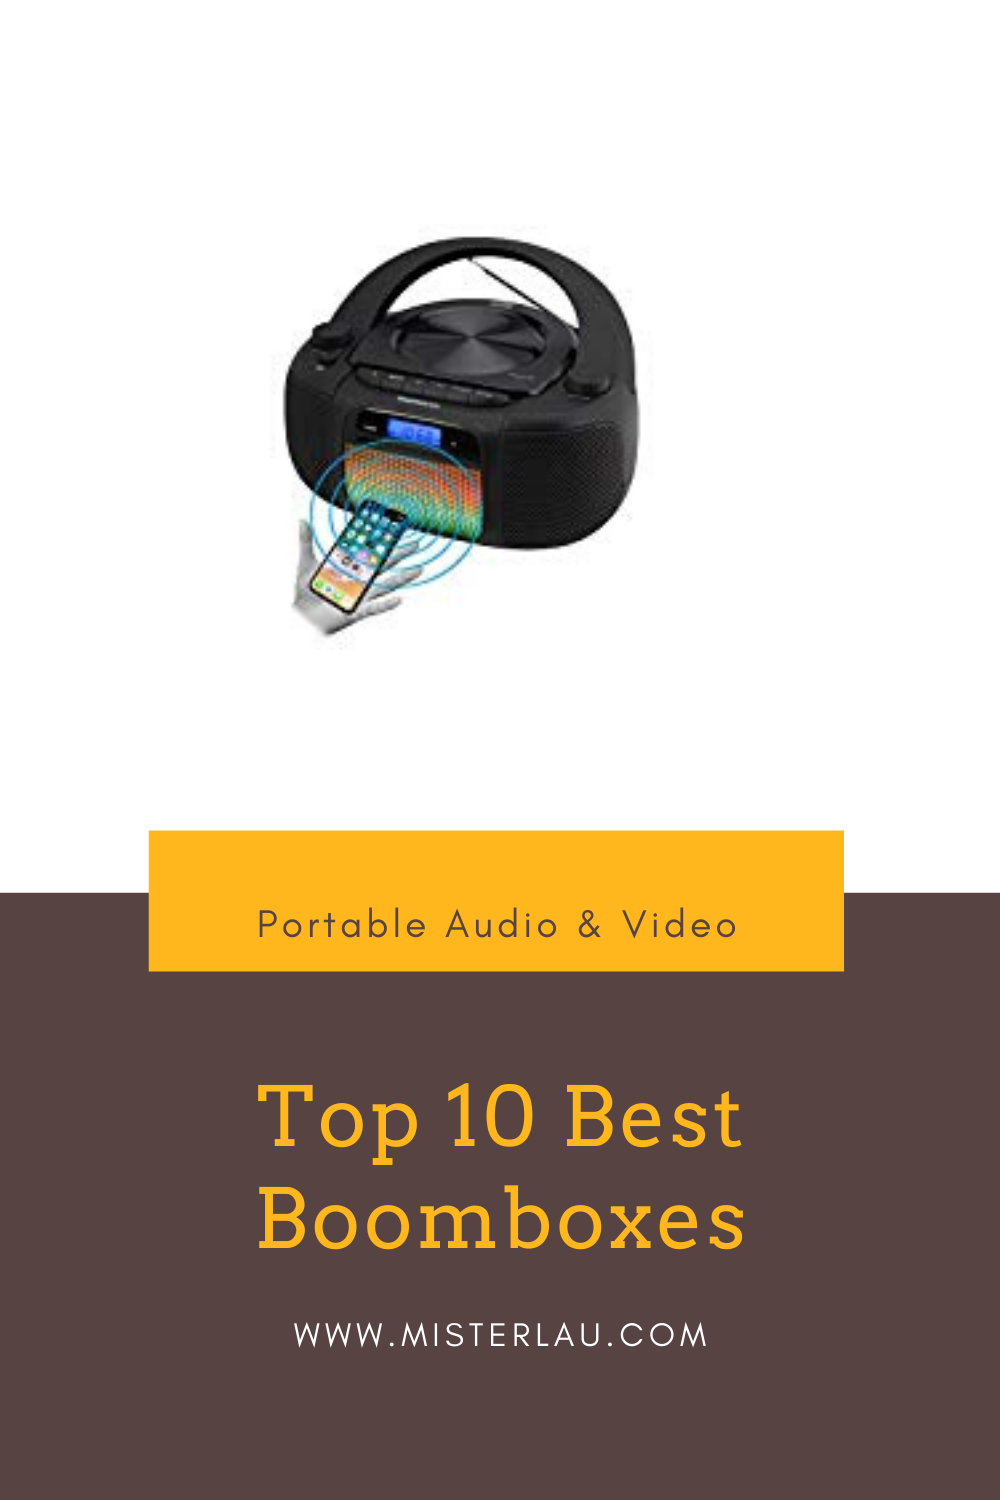 Top 10 Best Boomboxes in 2020 Boombox, Electronics